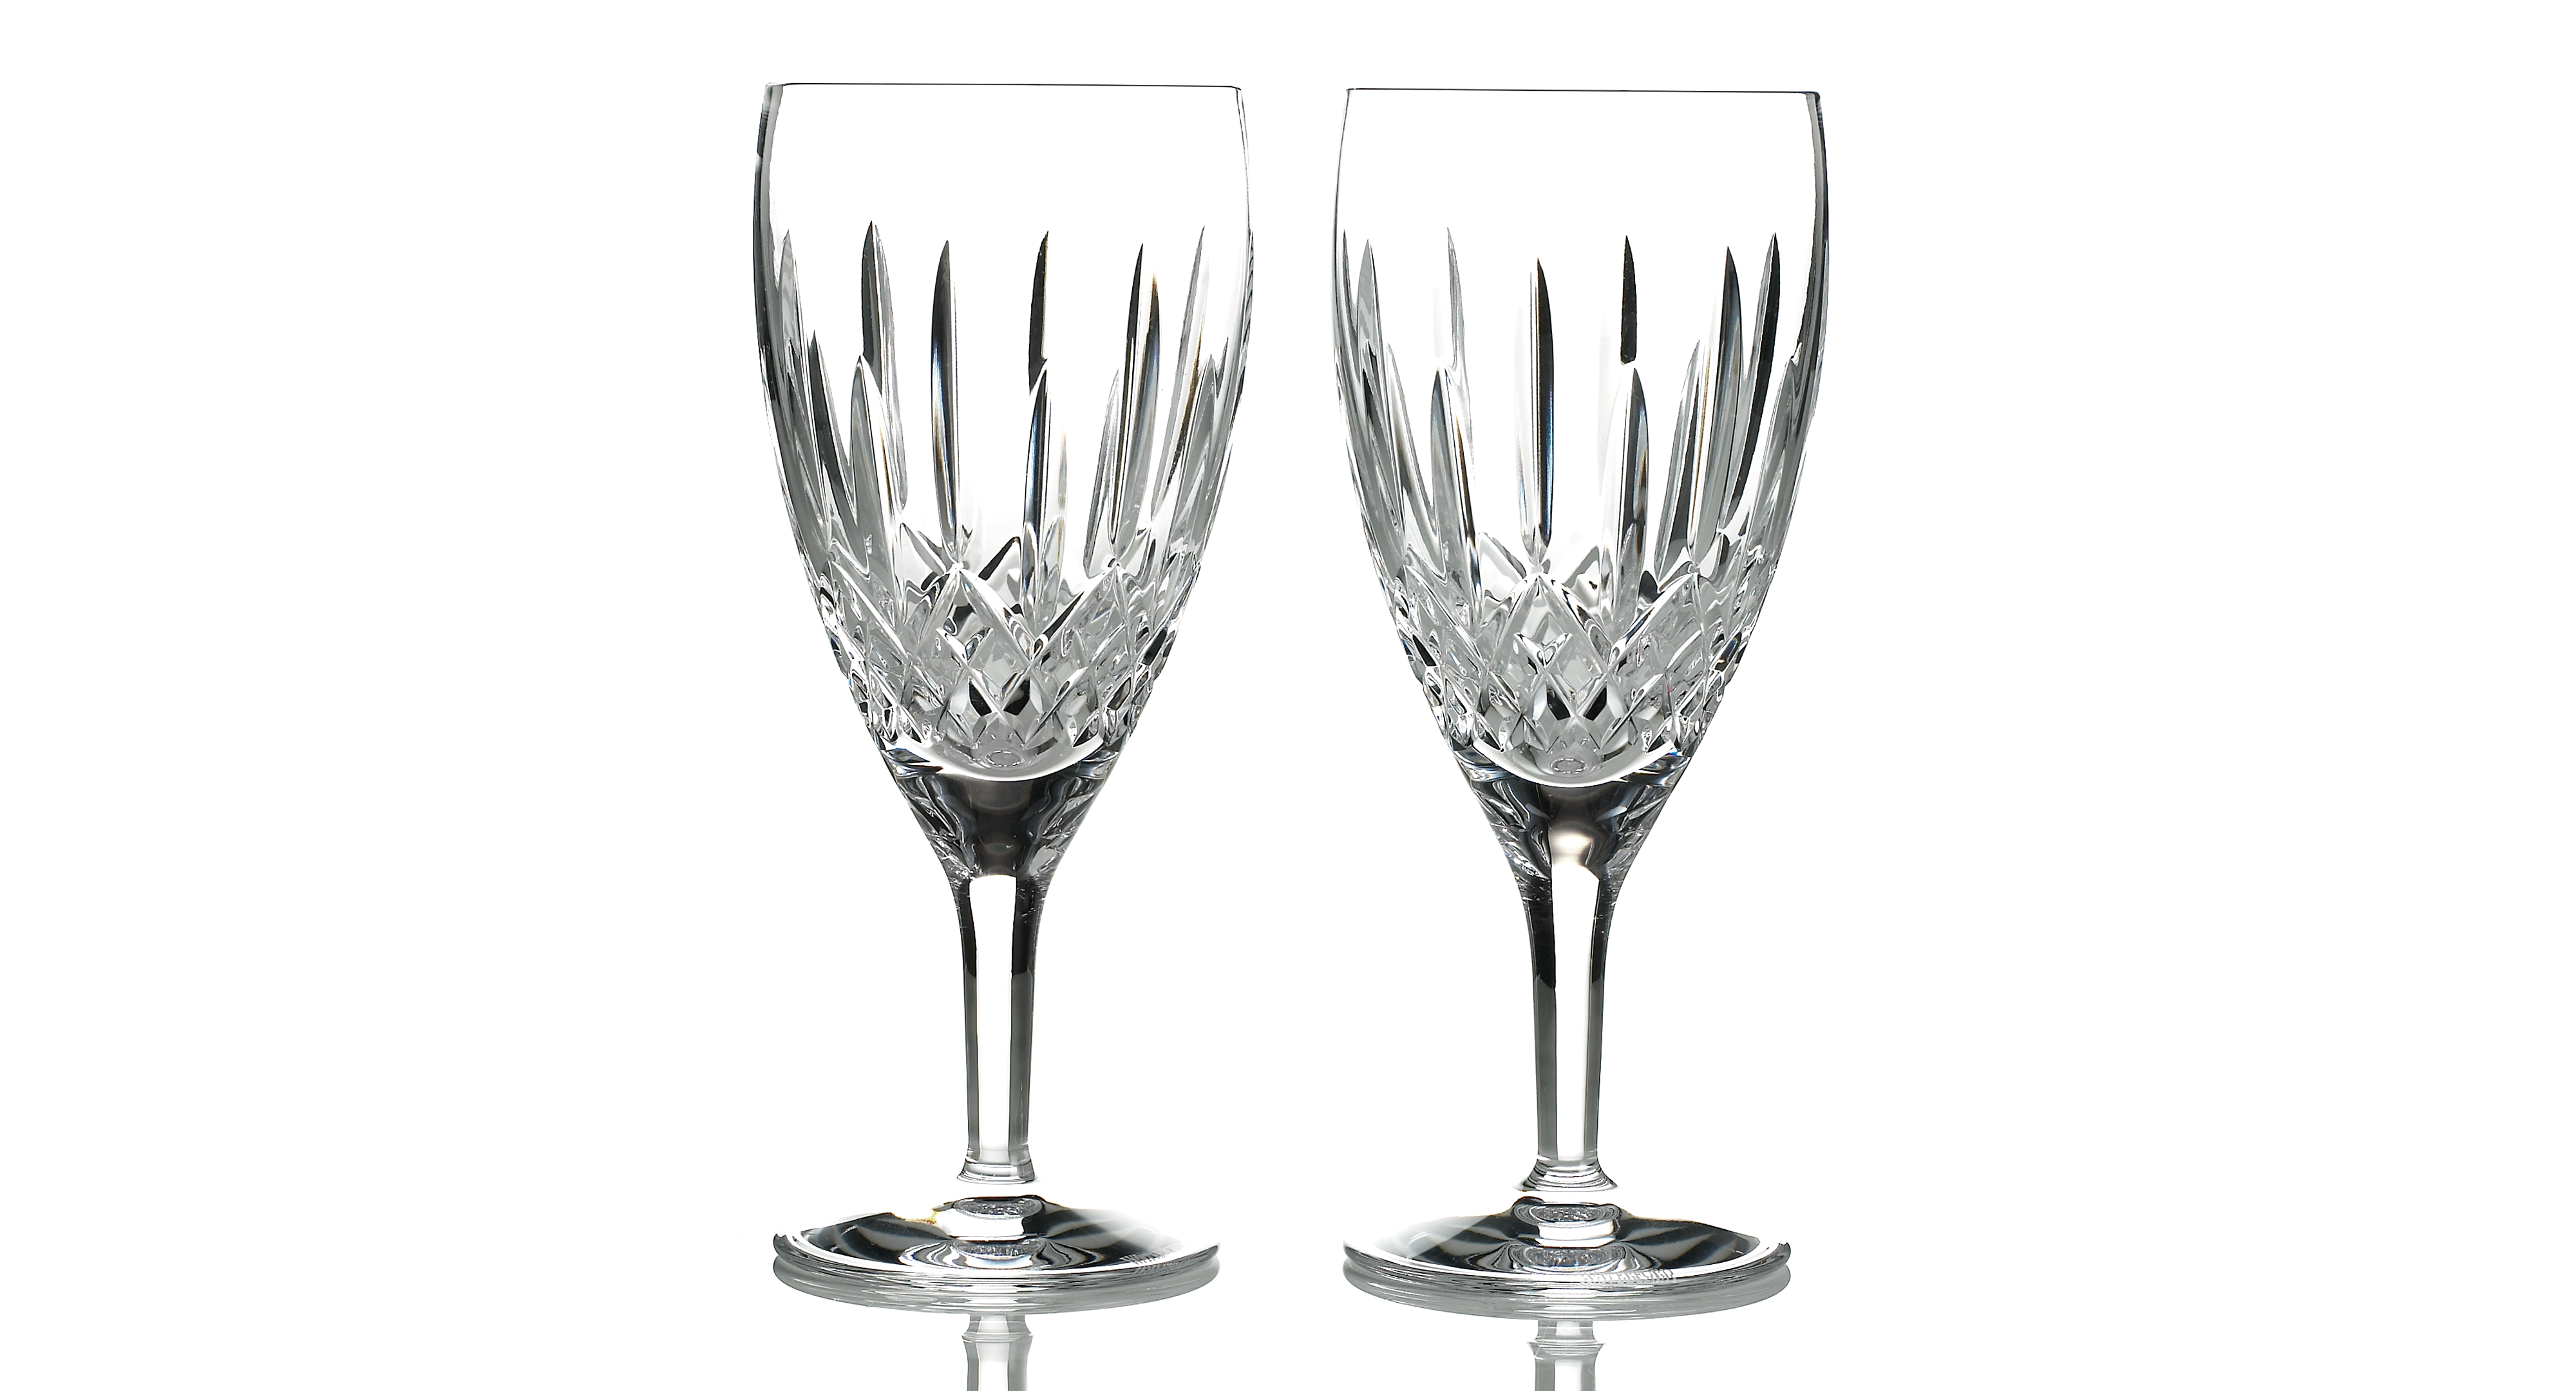 Waterford Stemware, Lismore Nouveau Iced Beverage Glasses, Set of 2